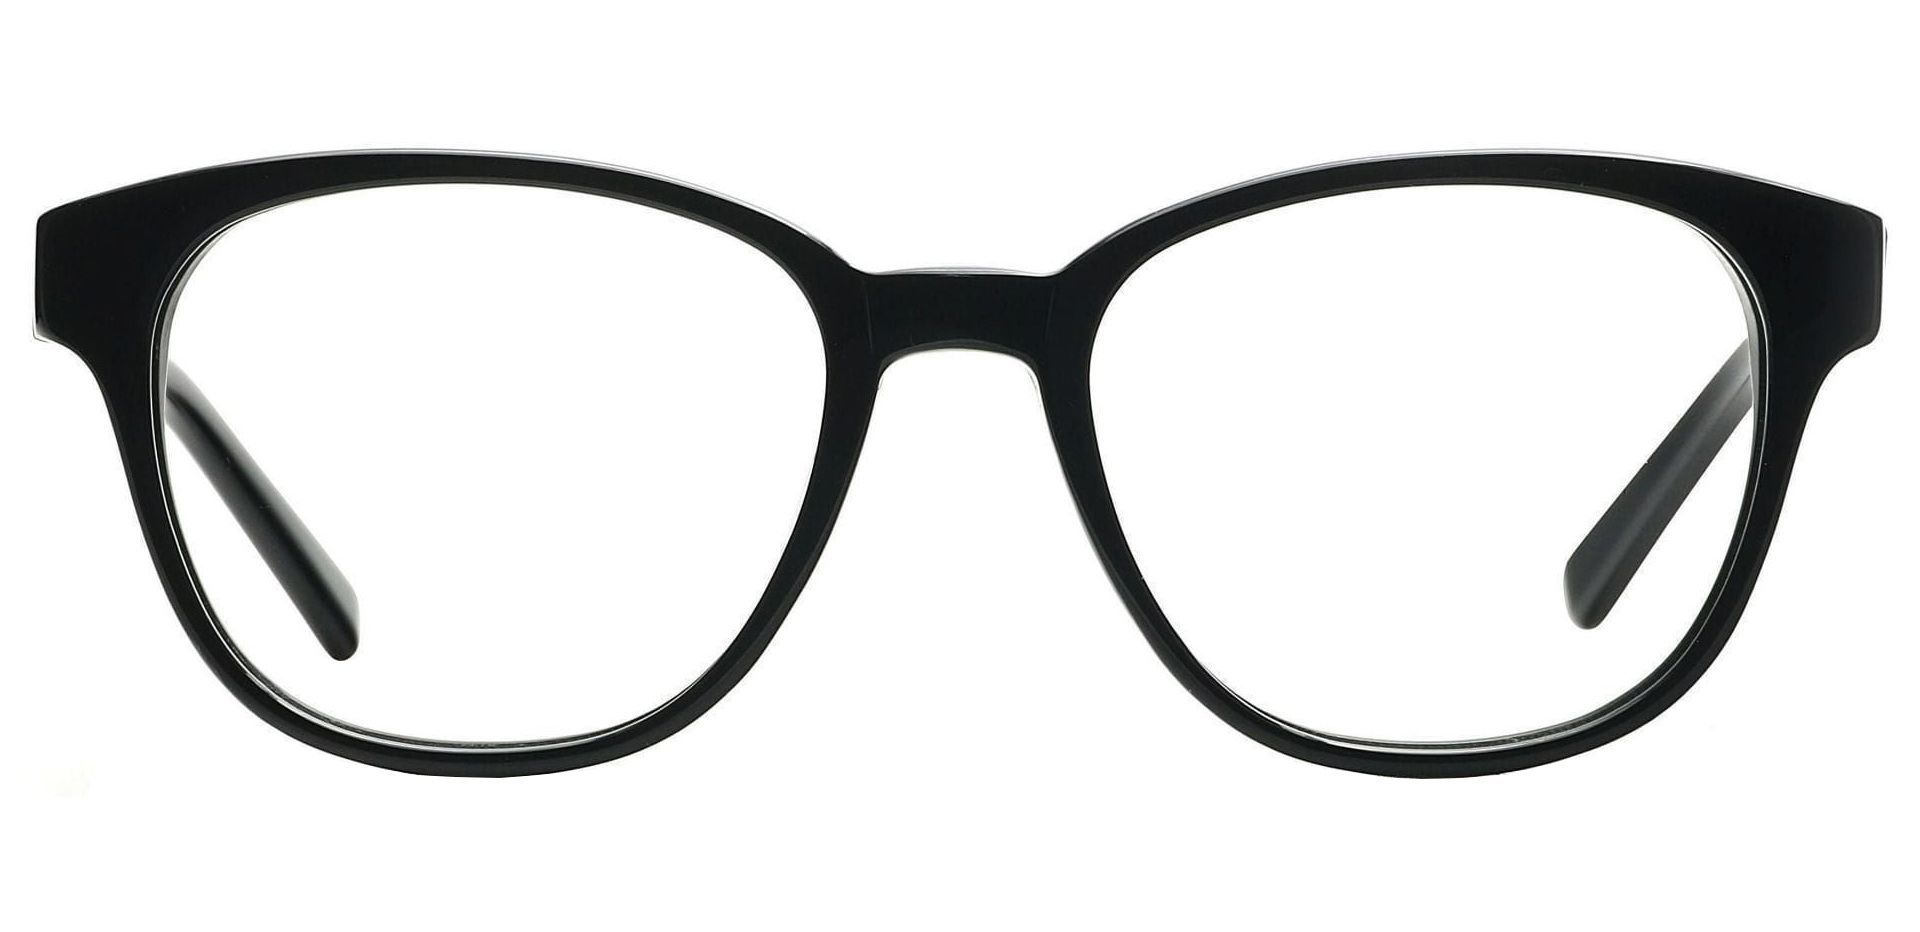 Elan Classic Square Lined Bifocal Glasses - Black